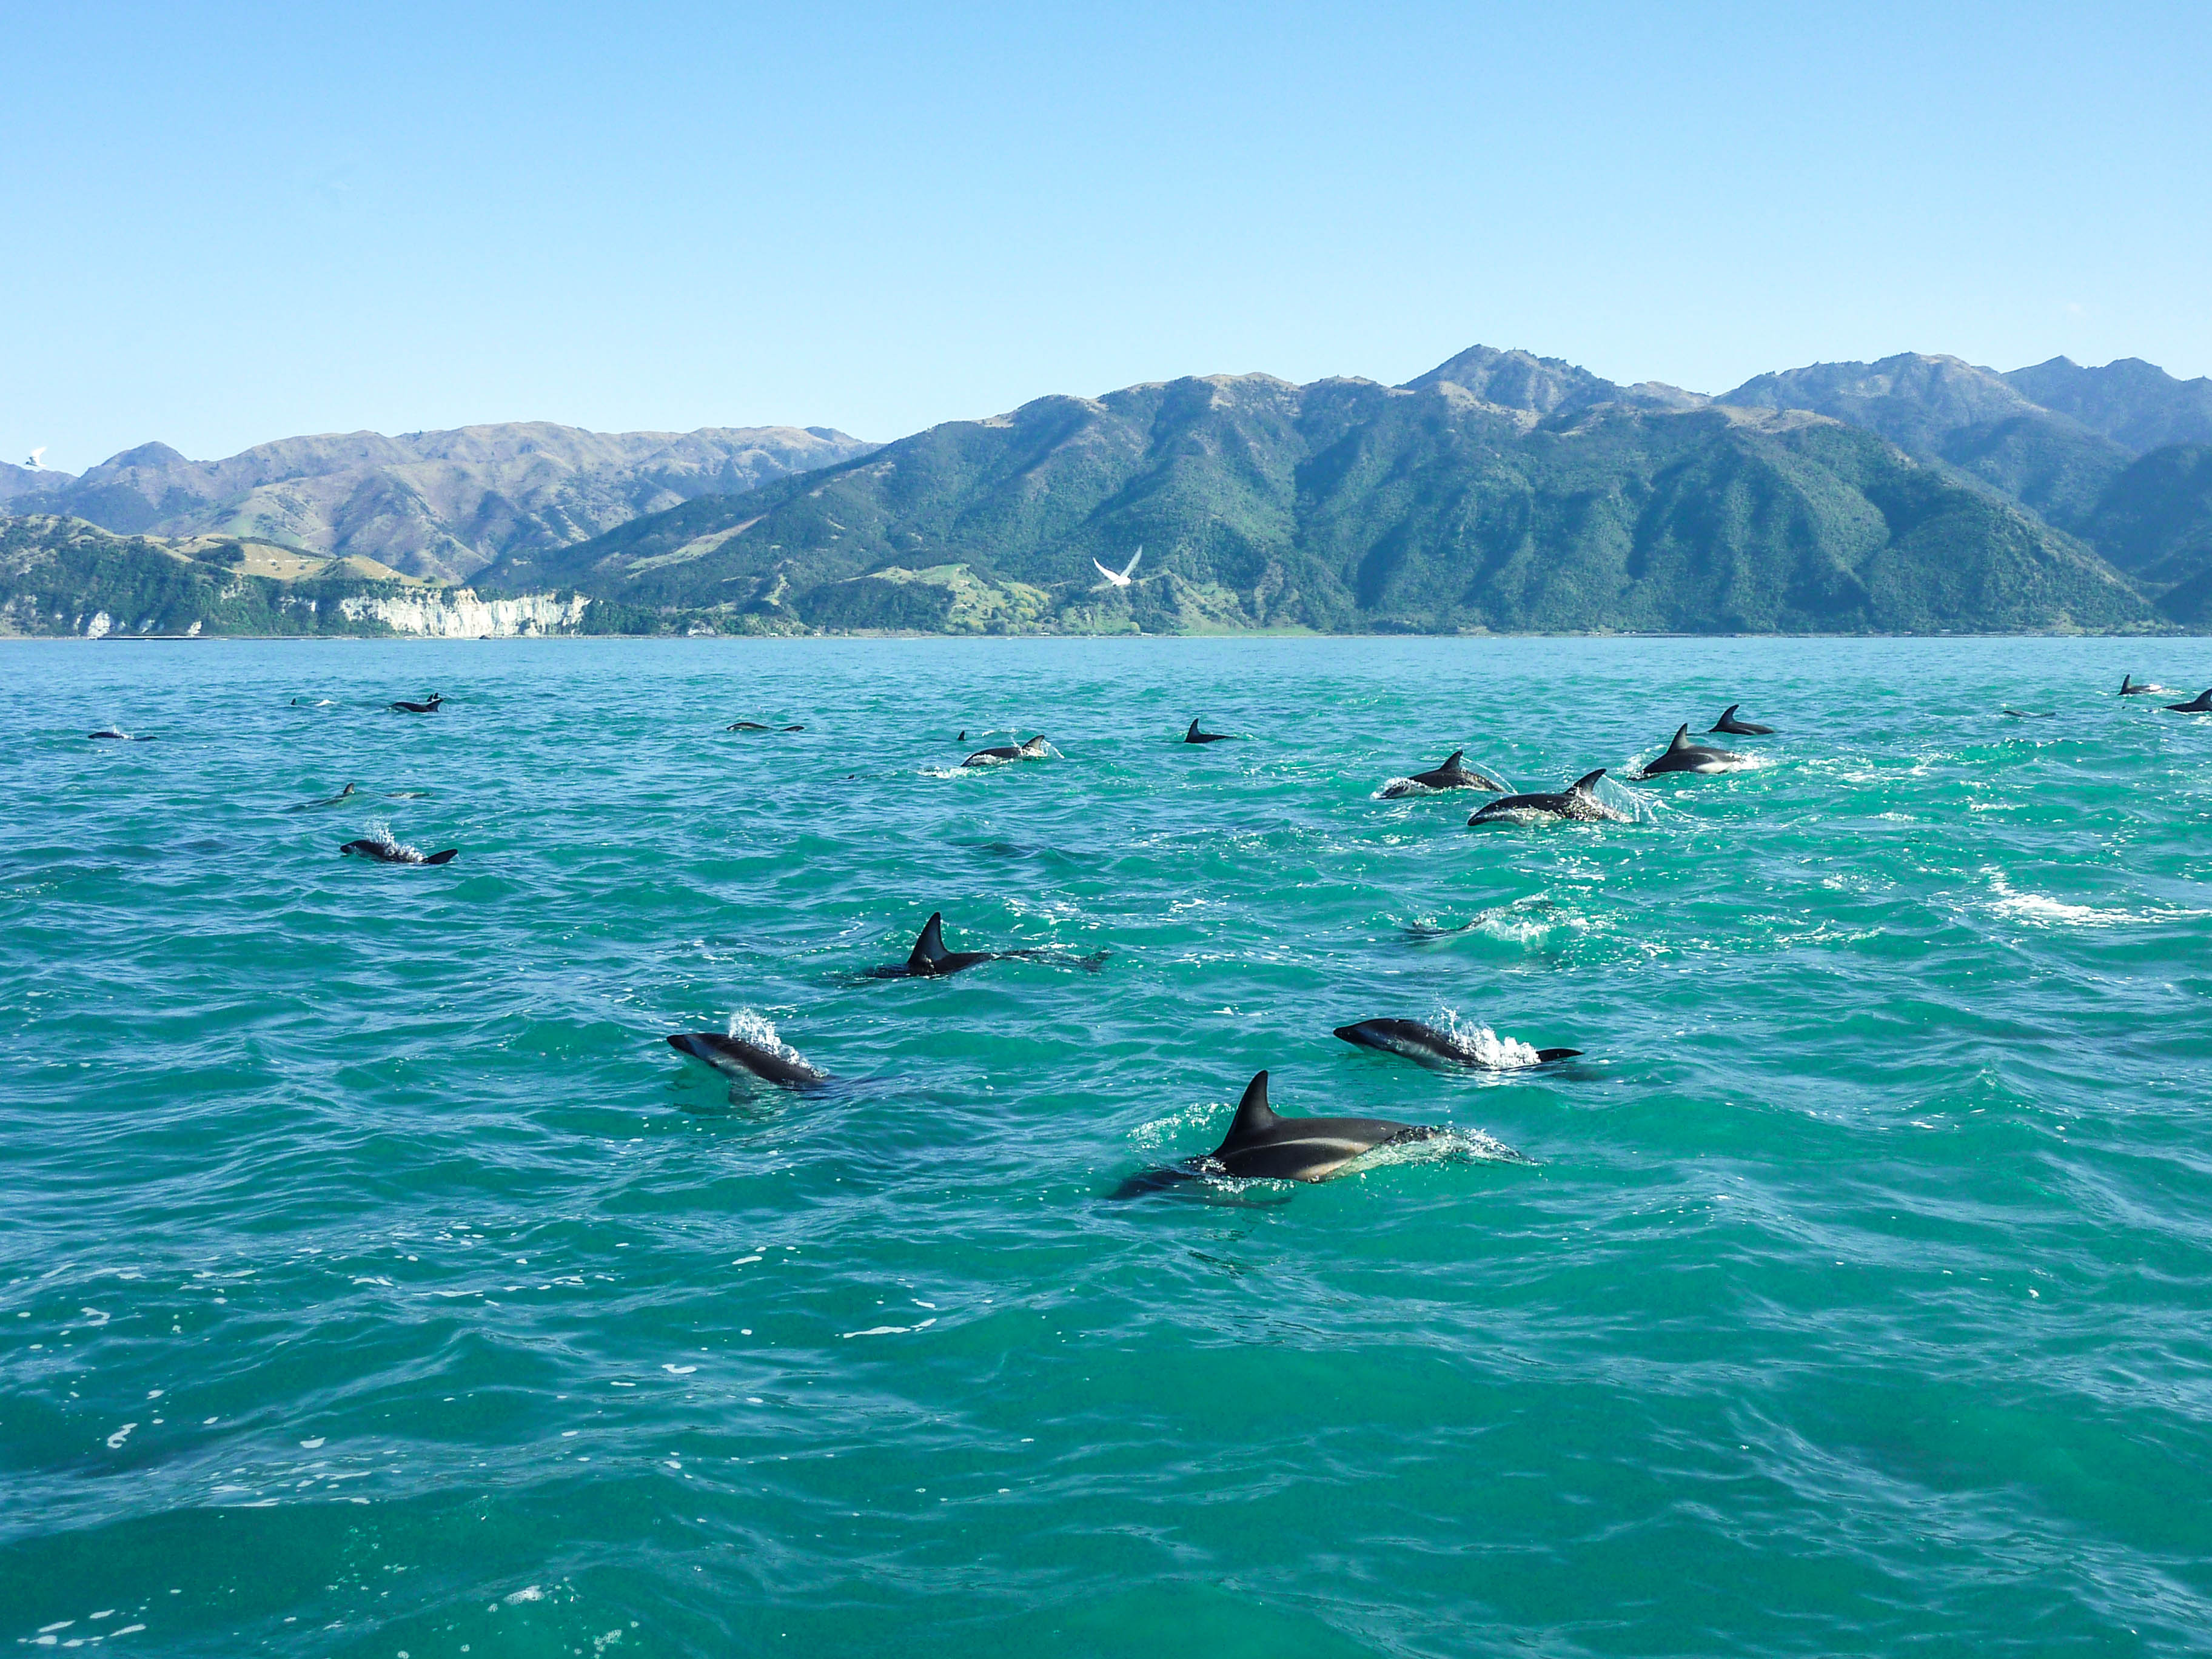 Dolphins jumping outside Kaikoura